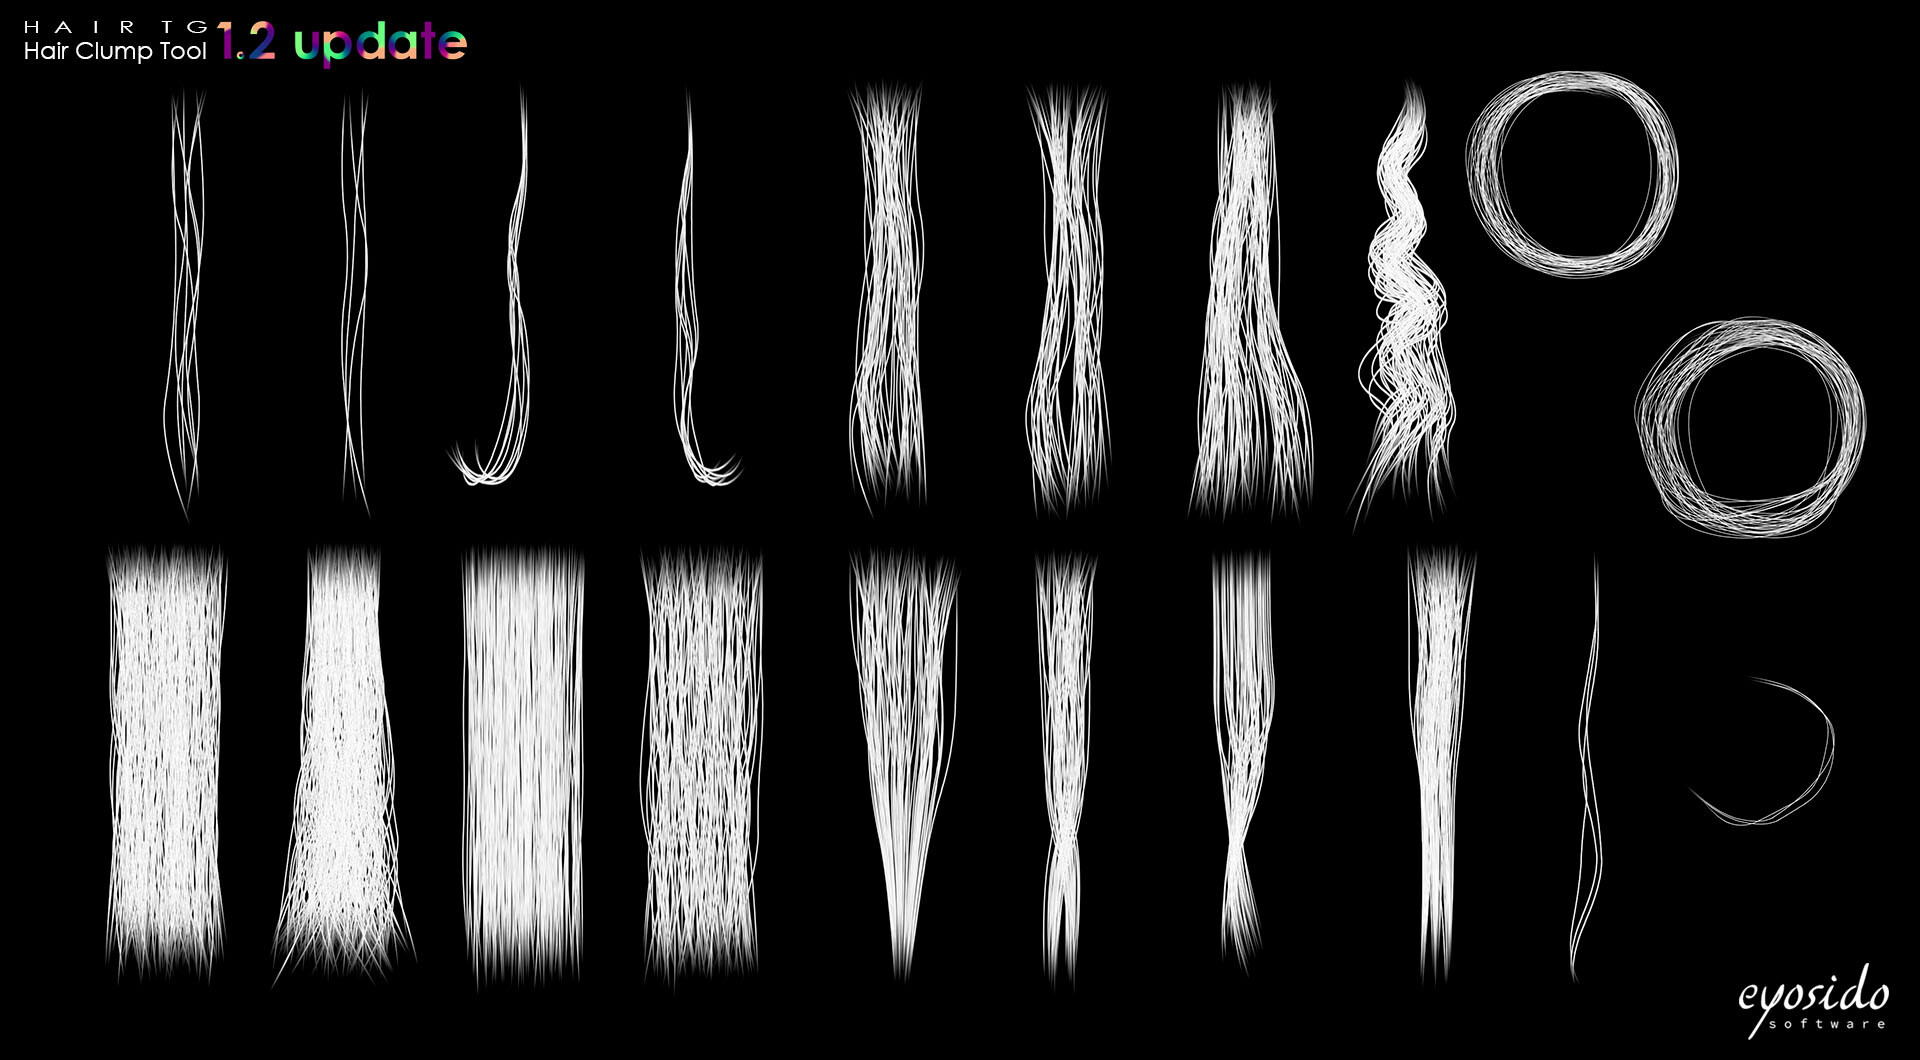 HairTG - Tiler, tile up to 40 hair clumps to generate a final texture.